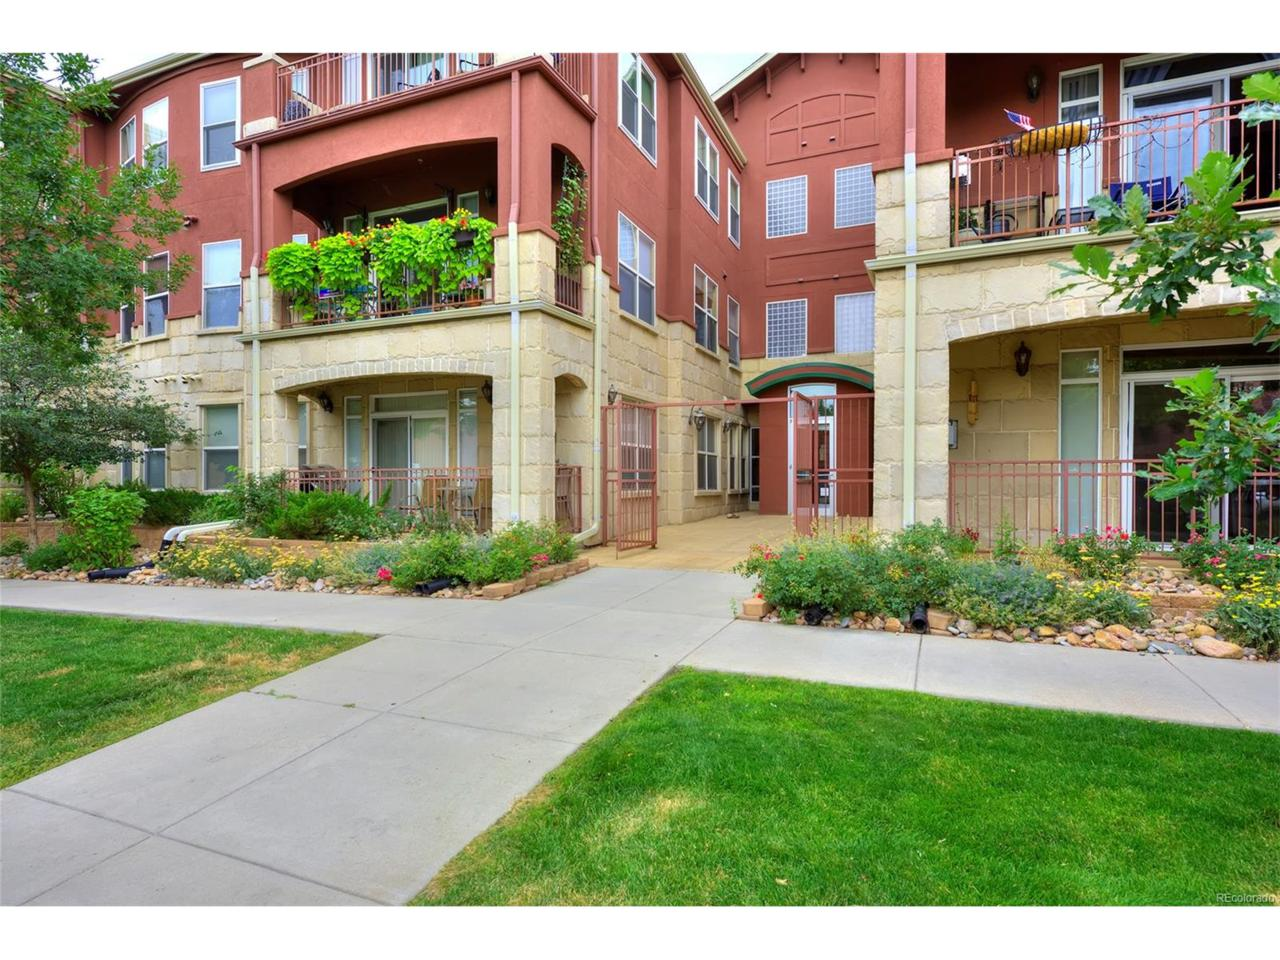 2100 N Humboldt Street #101, Denver, CO 80205 (MLS #3129403) :: 8z Real Estate